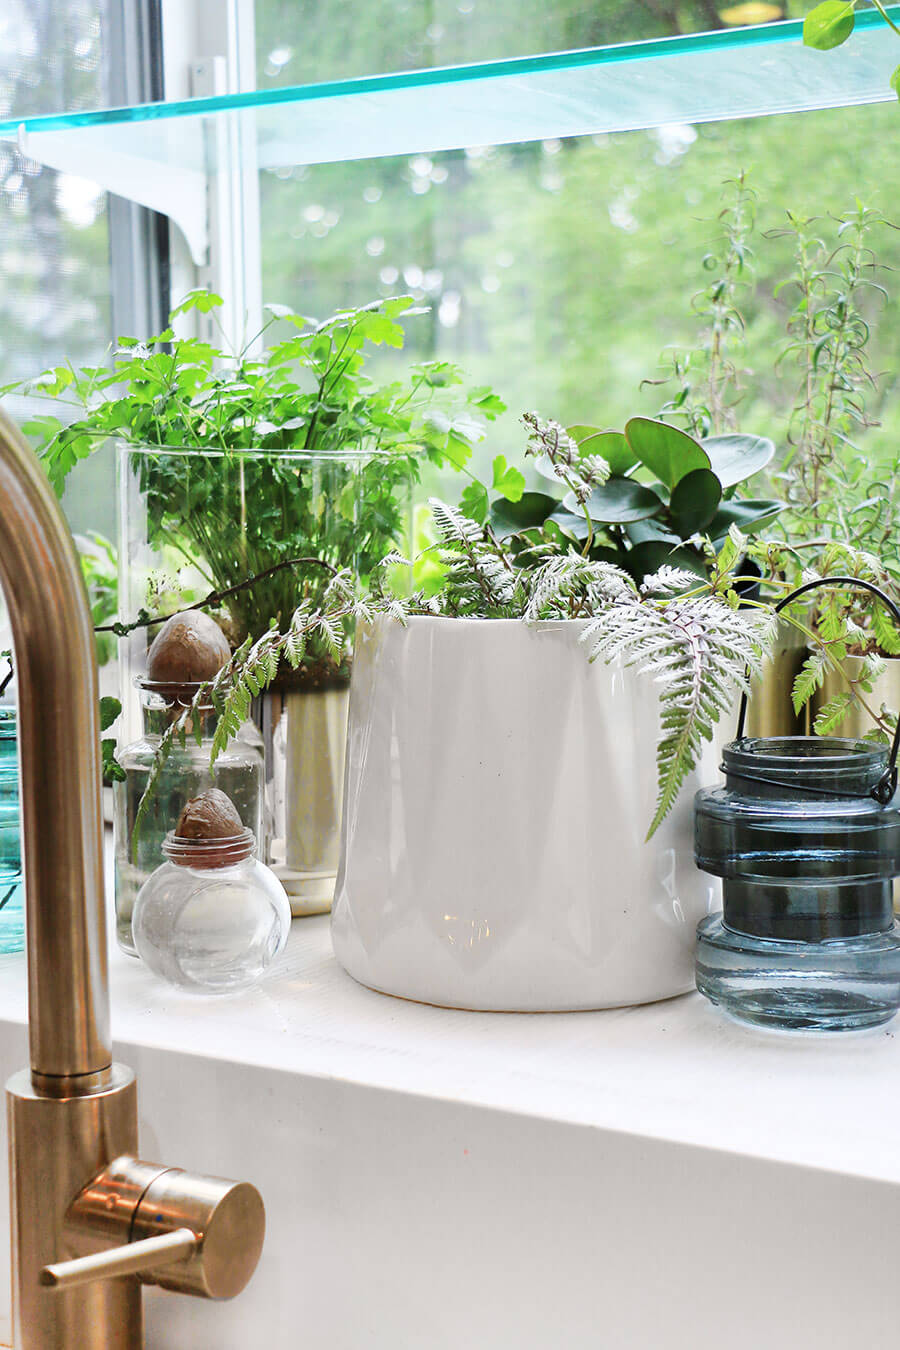 Garden window with stylish planter